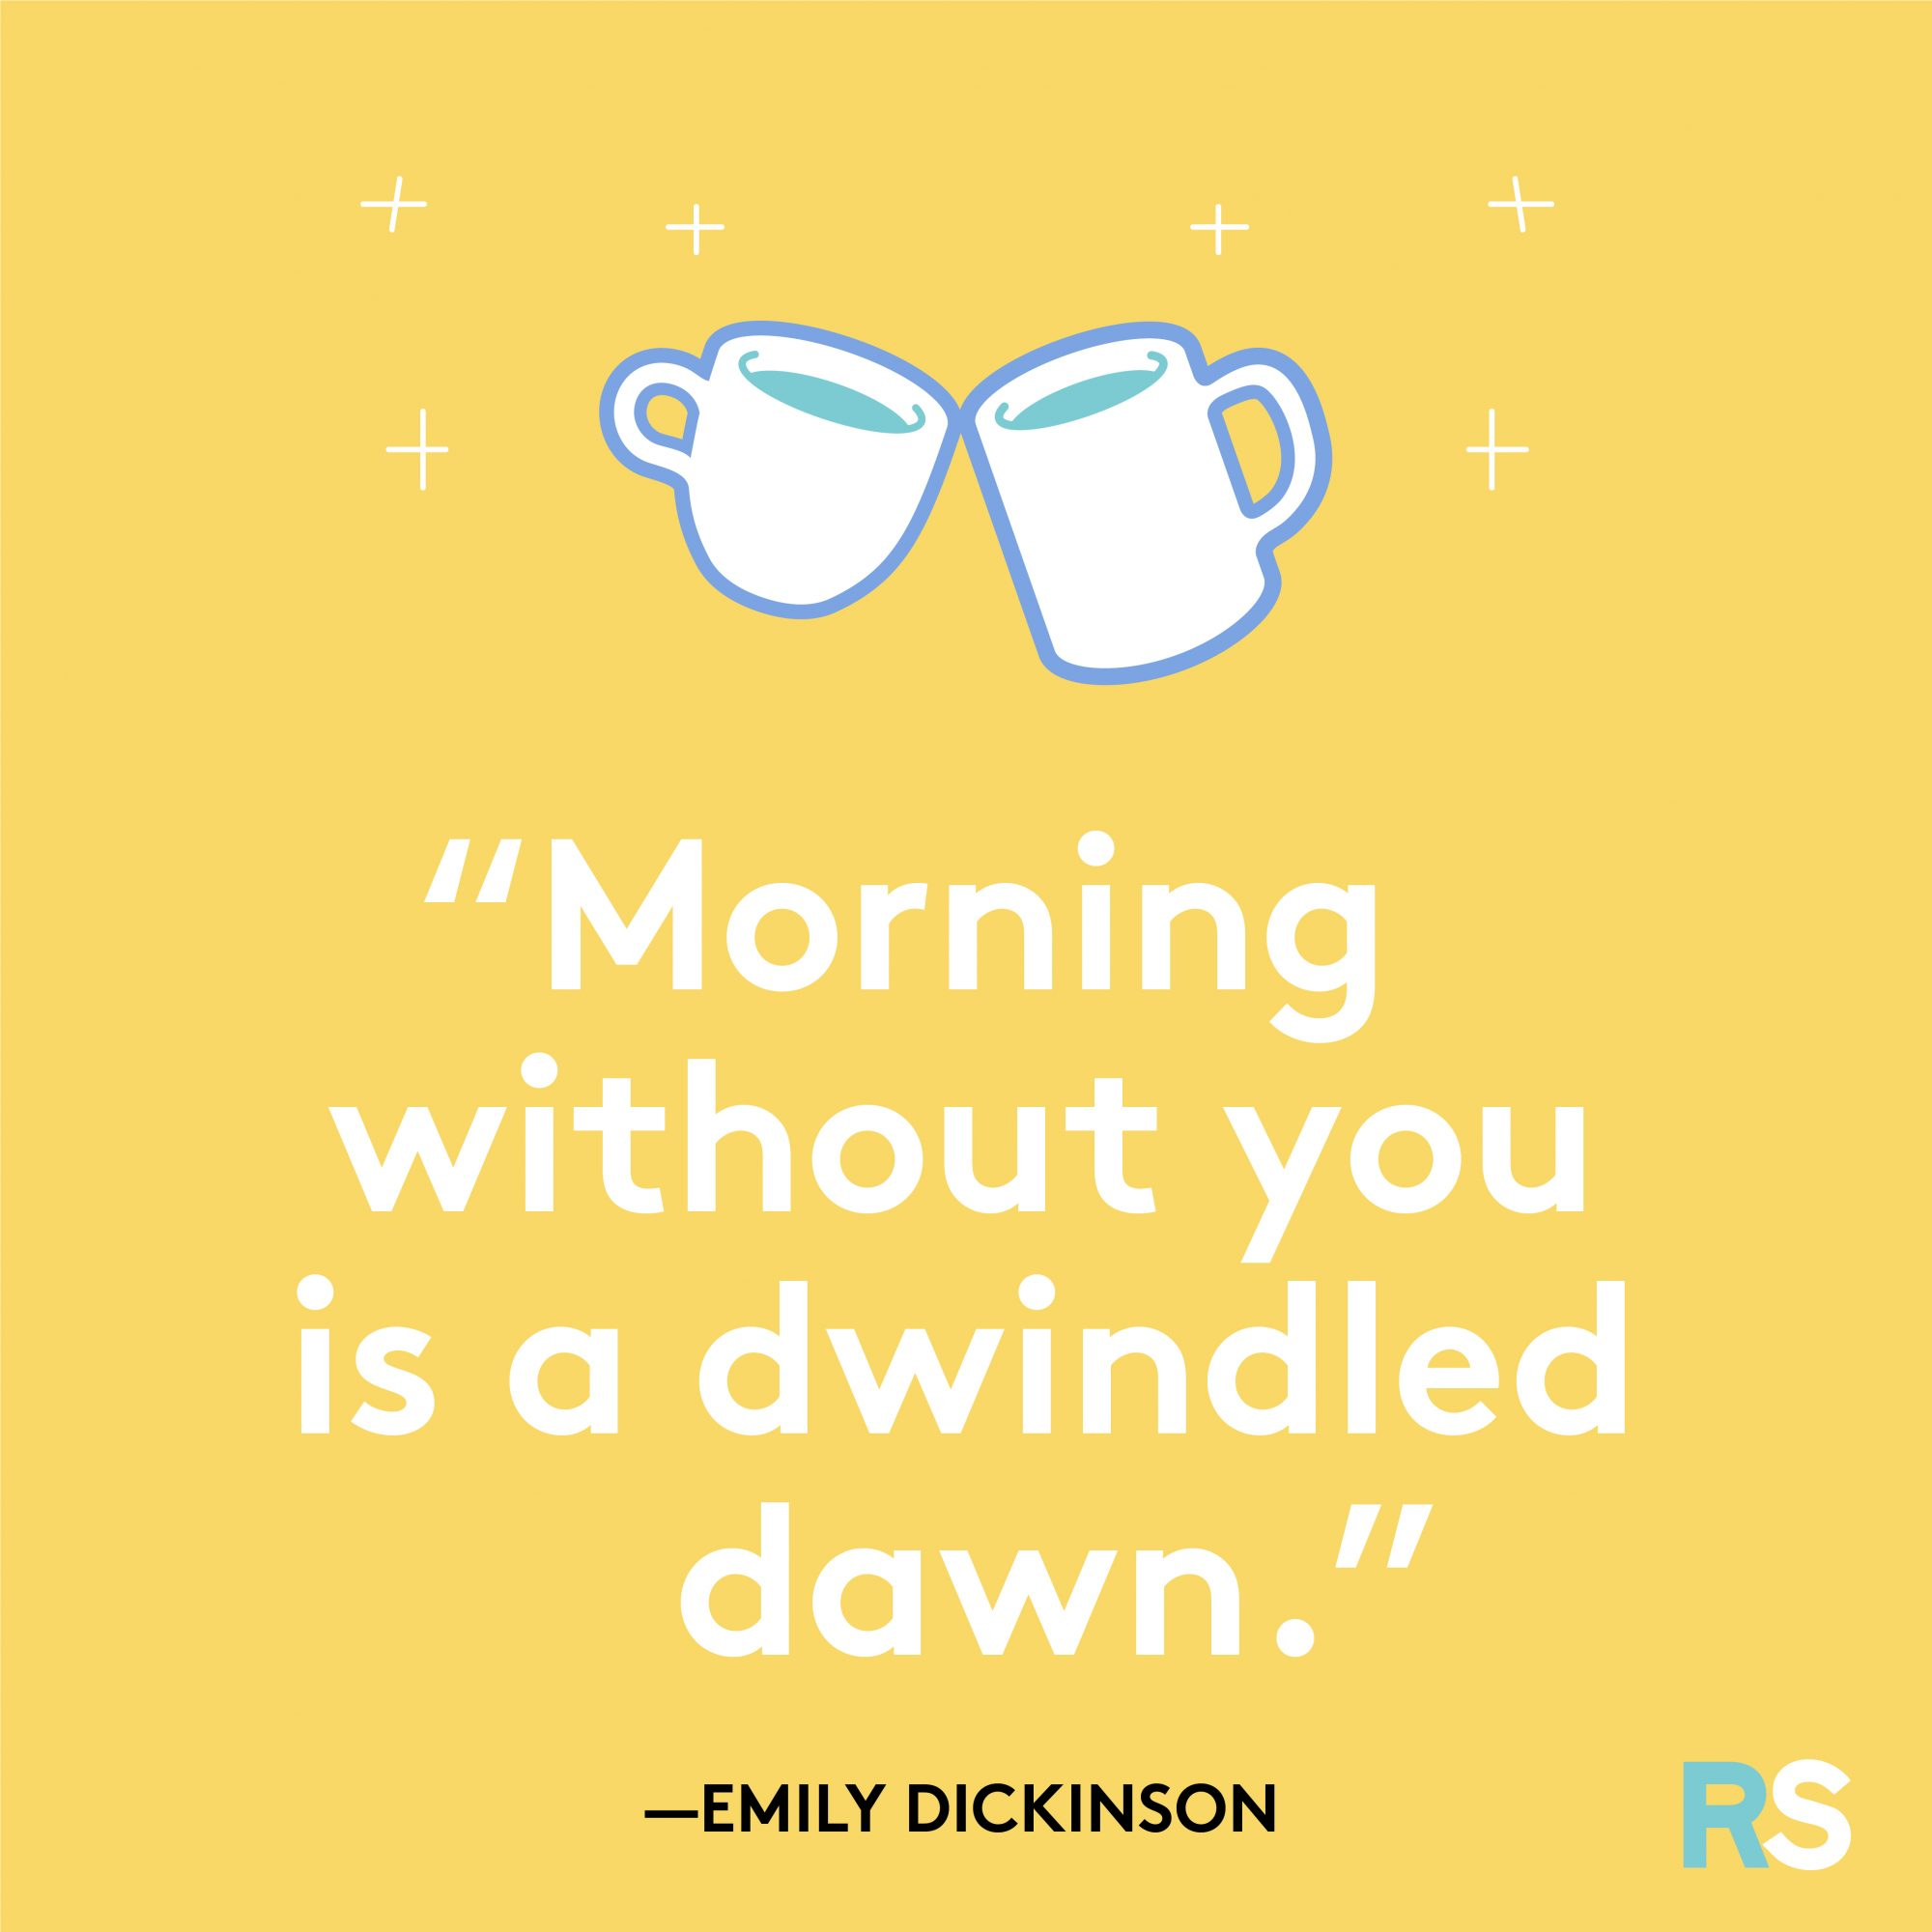 Morning Without You Is a Dwindled Dawn Quote by Emily Dickinson